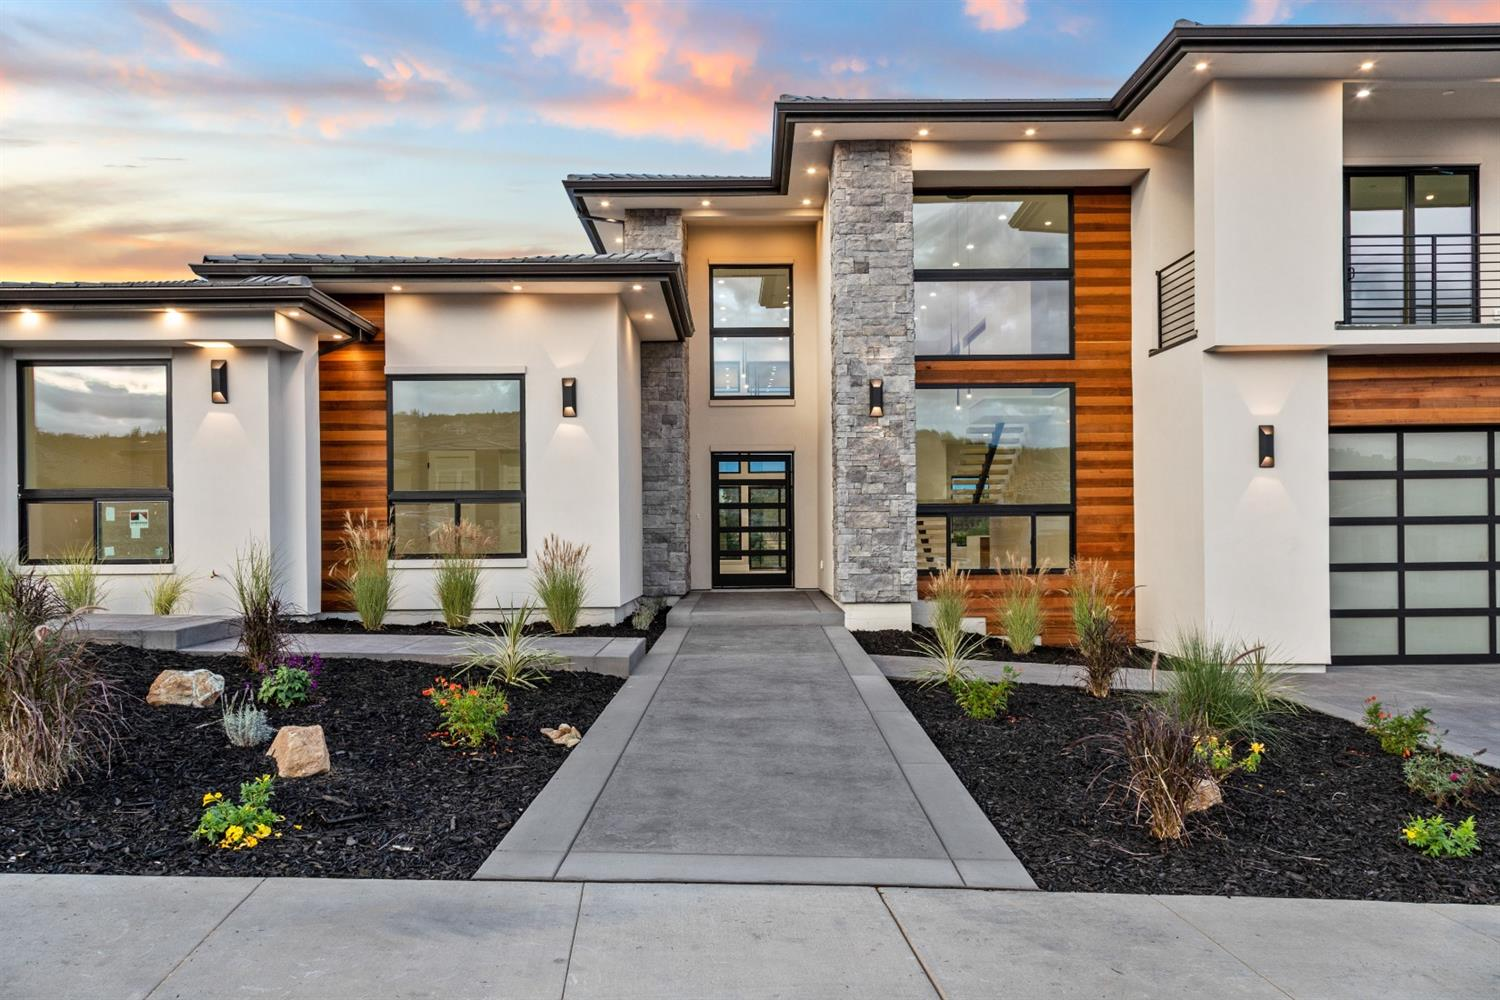 Mid Century Modern, Eichler, Contemporary and Modern homes for sale in Sacramento, Carmichael, Fair Oaks, Davis and the greater metro area